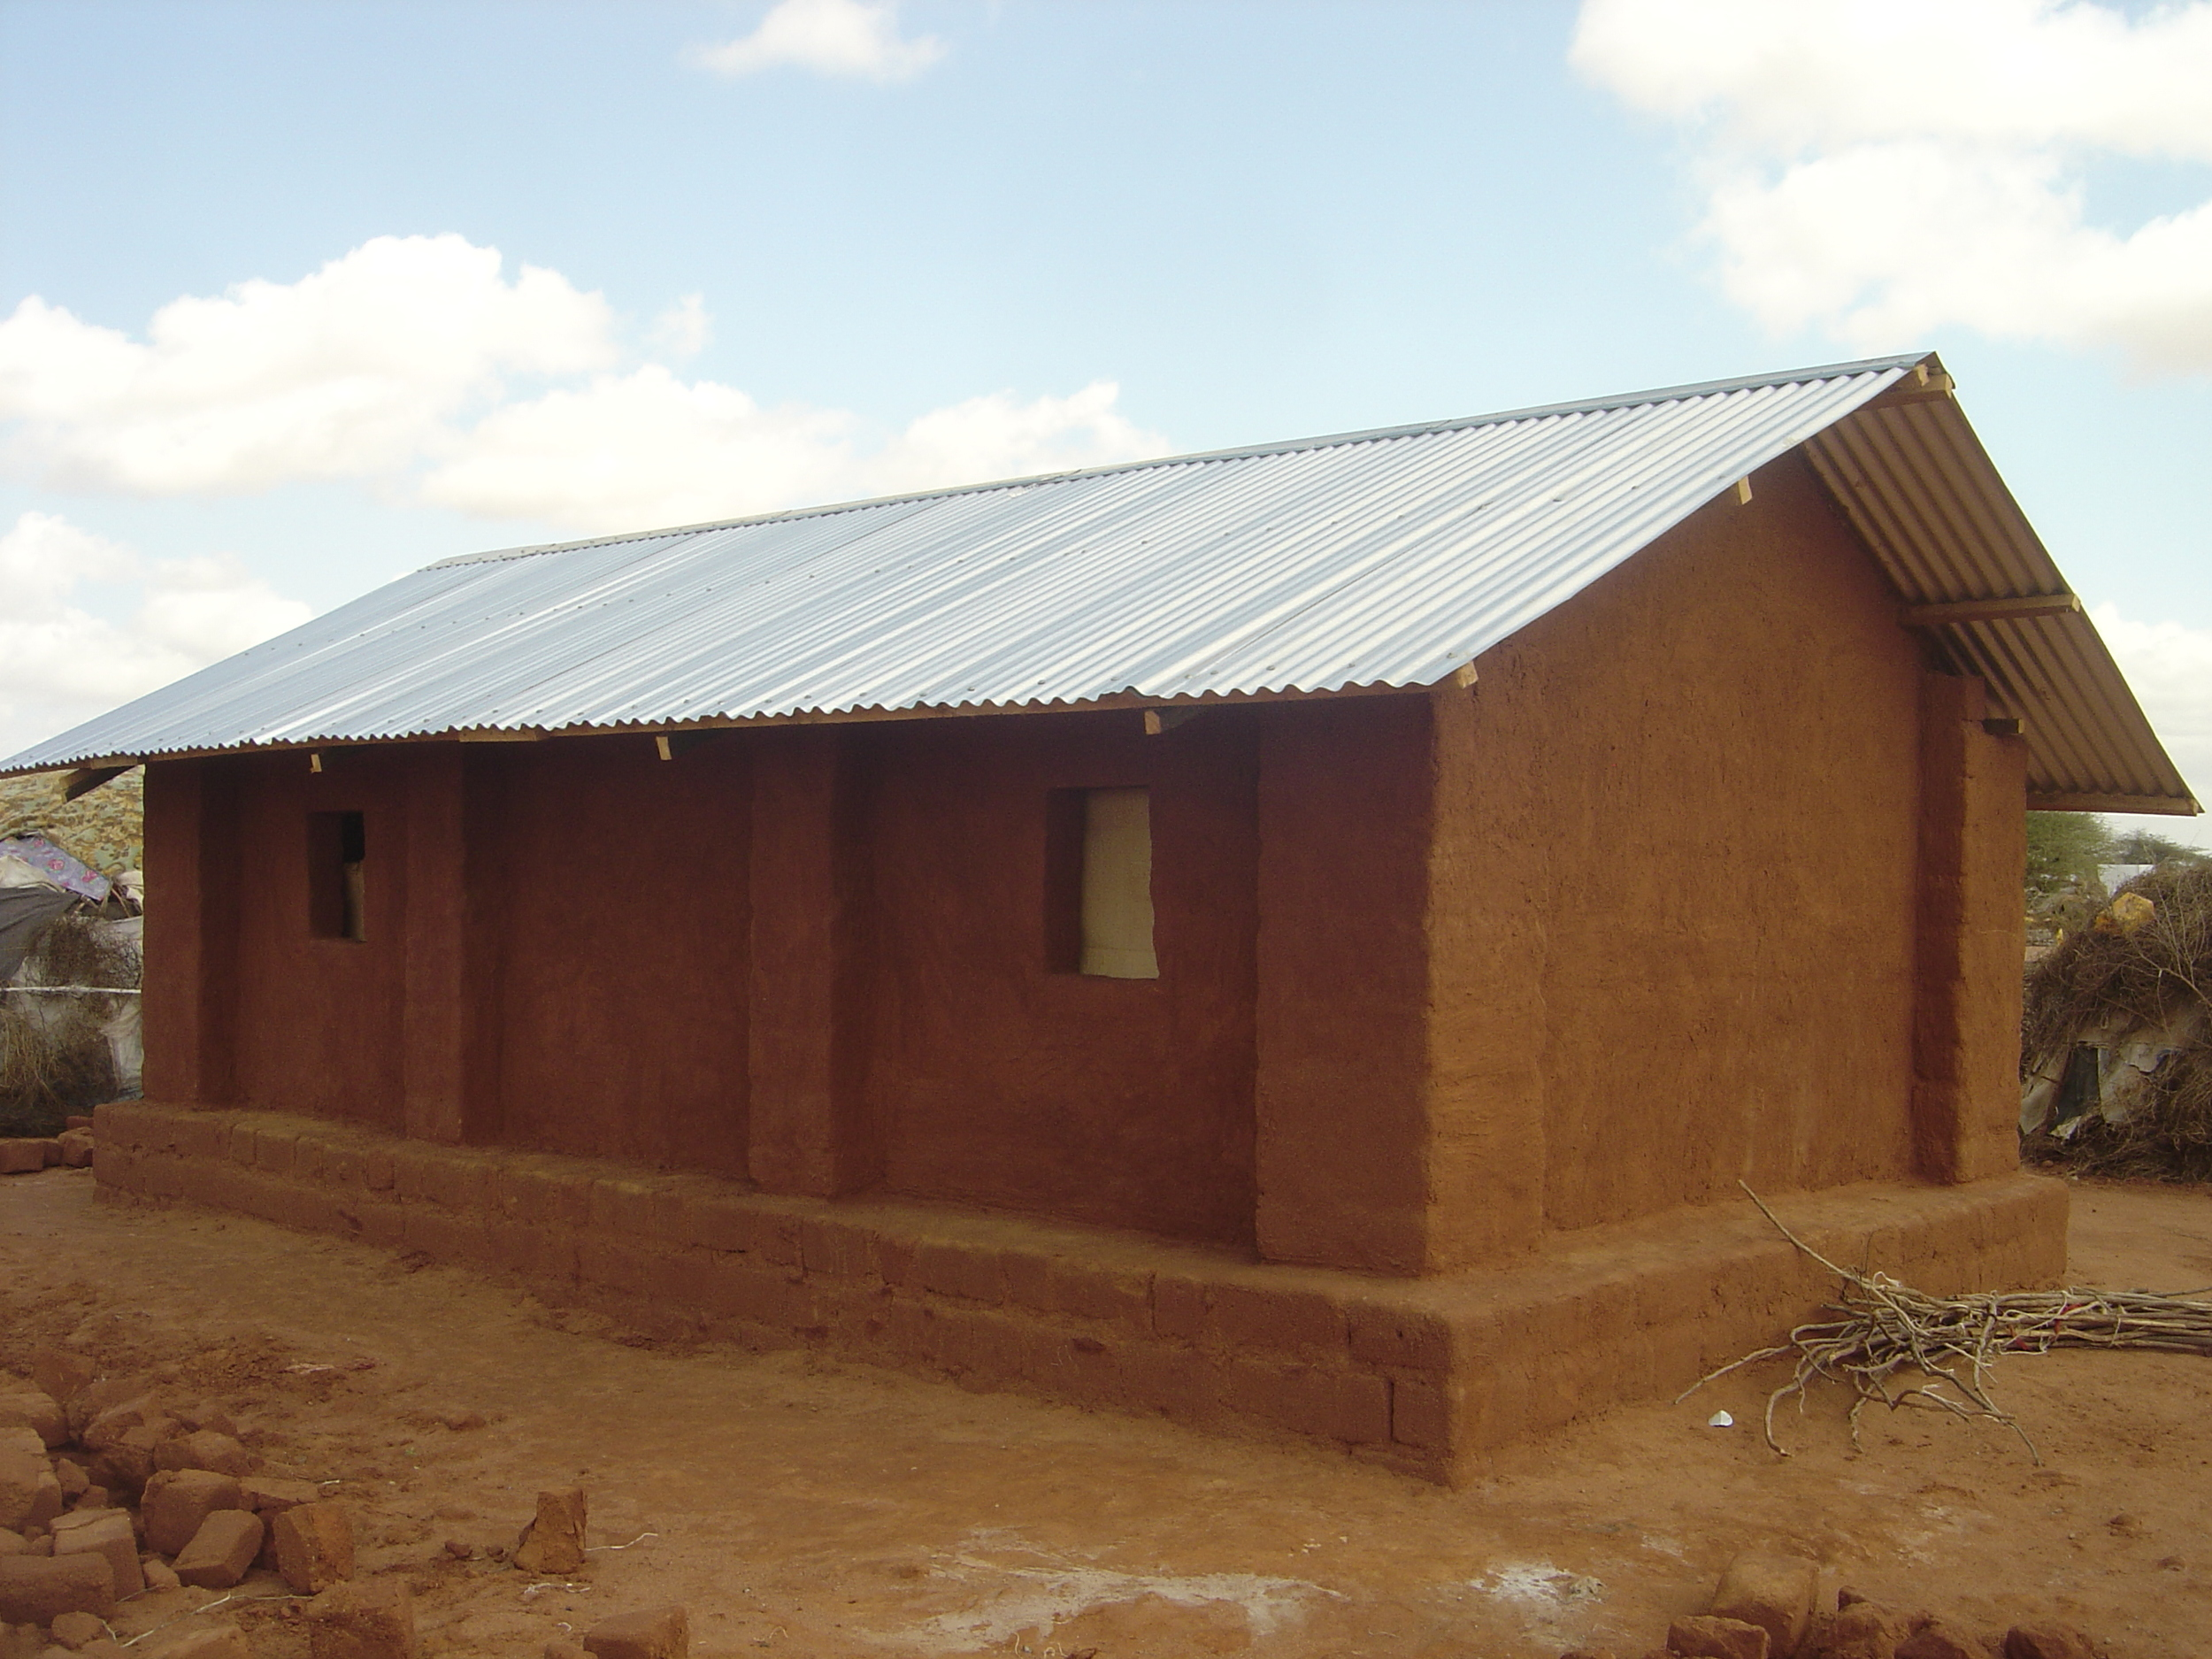 Transitional shelter co-designoutput using local knowledge and assets. 2007